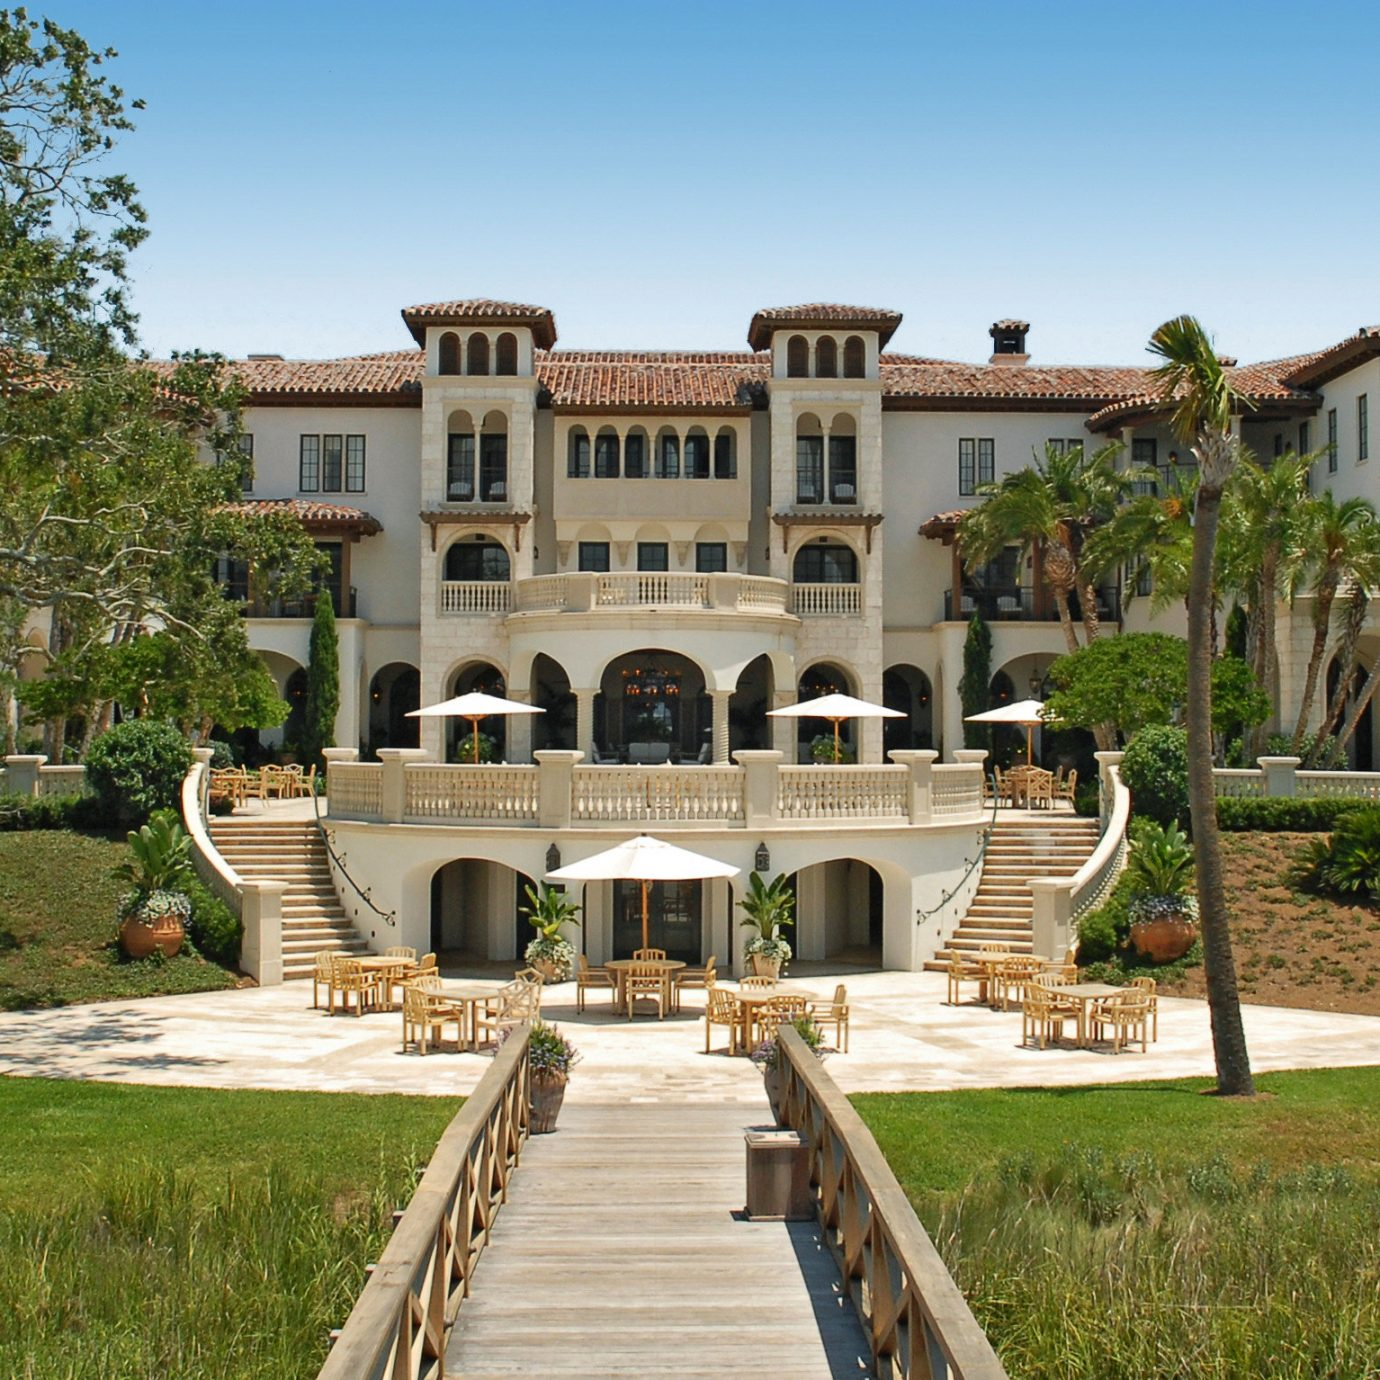 America Beach Islands Luxury Travel Trip Ideas Weekend Getaways grass sky property mansion building home Villa park historic house hacienda house landscaping Courtyard lawn official residence elevation stone walkway colonnade